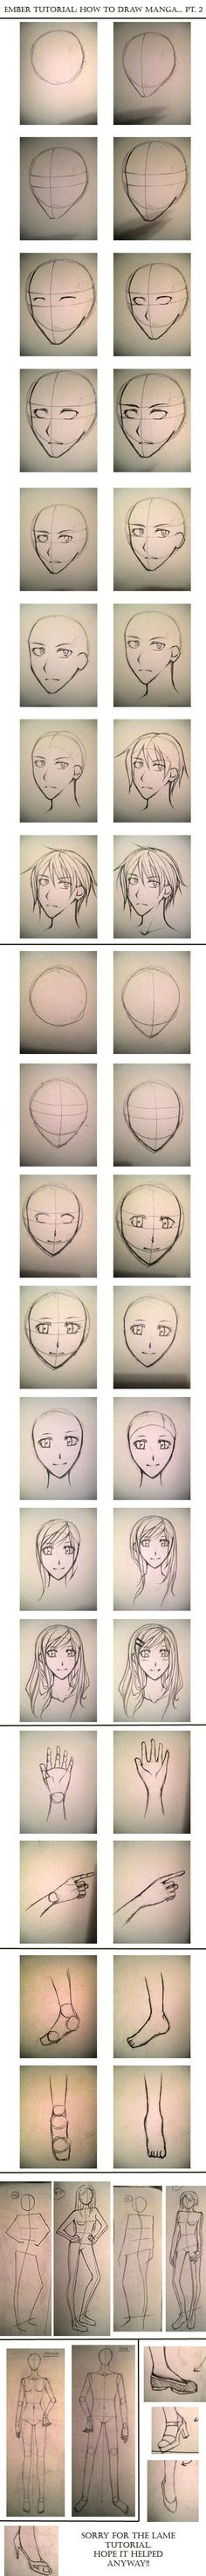 TUTORIAL: How to Draw Manga 2 by =ember-snow on deviantART Drawing Tutorials, Drawing Manga, Art Drawing, Drawing'S Art, Face Drawings, Drawing Guy Faces, Drawing Stuff, Girl Face Drawing, How To Draw Anime Guy